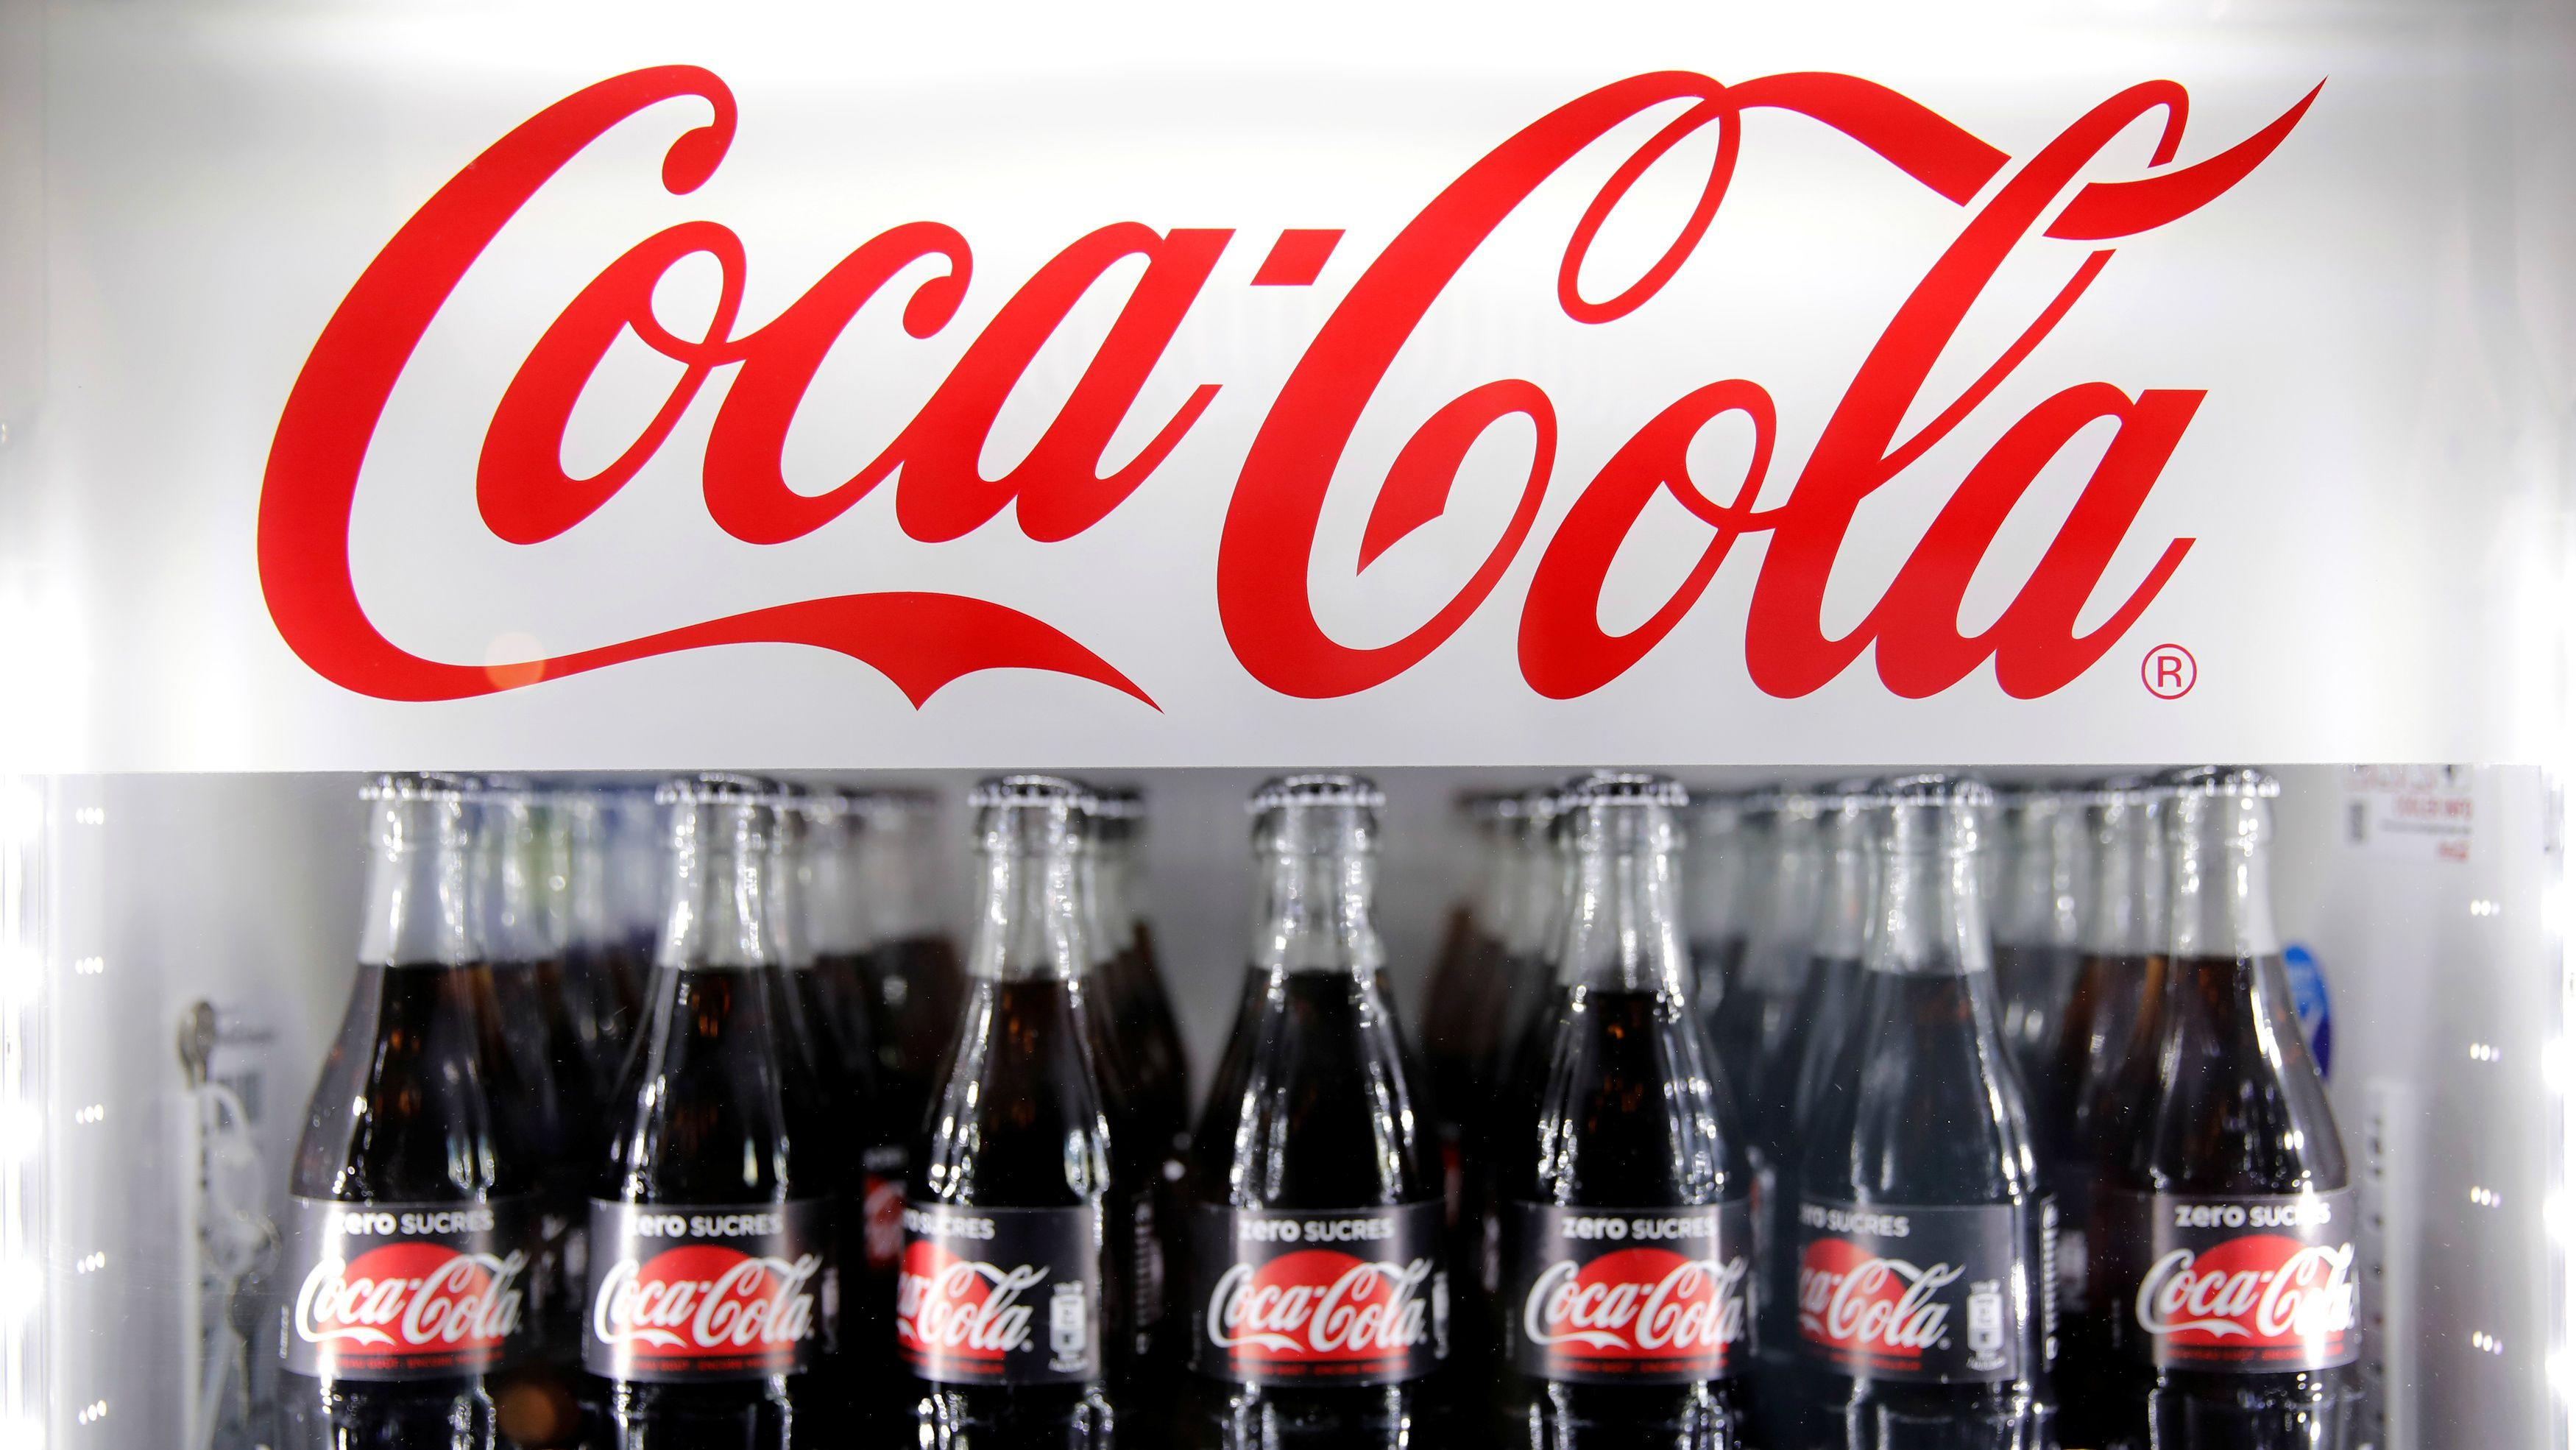 coca cola the iconic american soda maker has long been among the most international of enterprises Case: coca cola- the strategy and structure of international business coca cola, the iconic american soda maker, has long been one of the most international of enterprises.